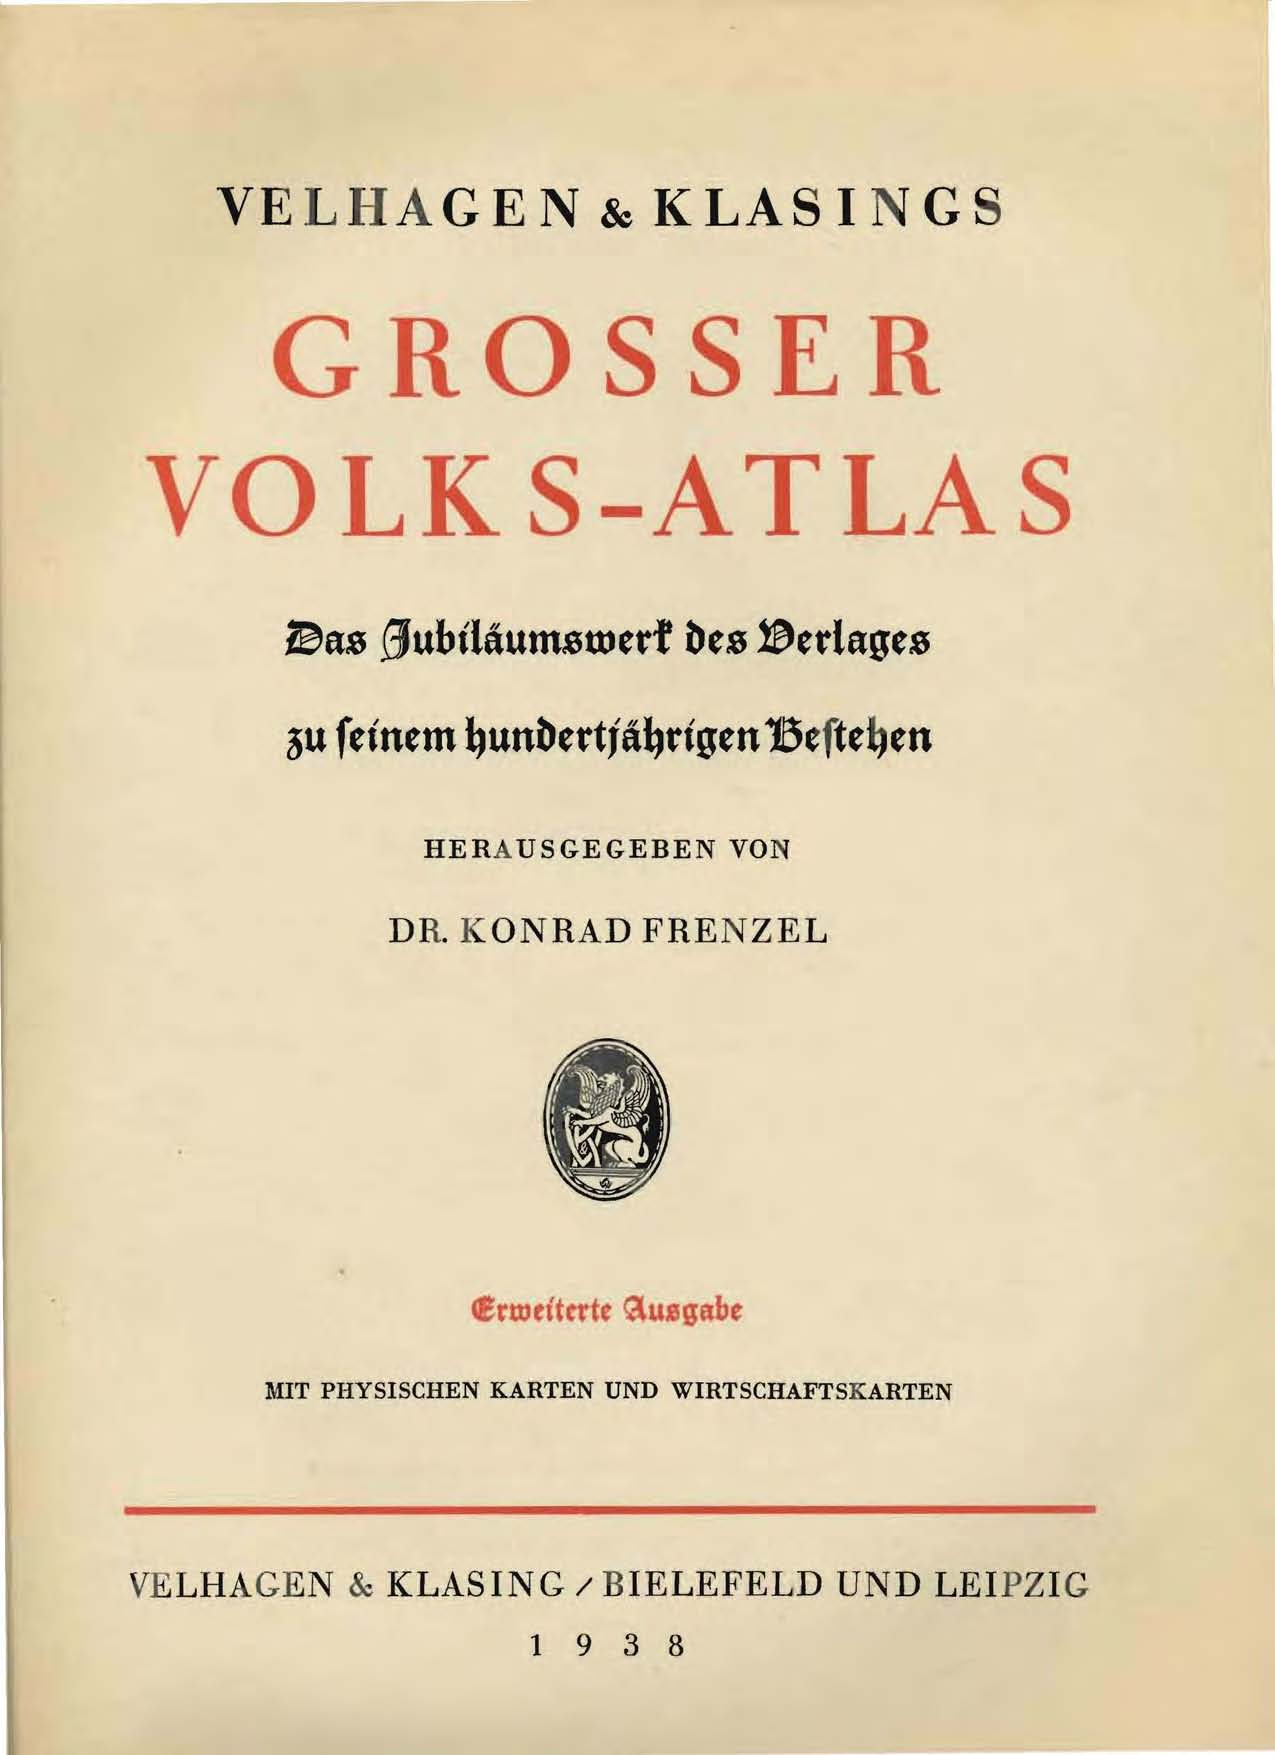 Grosser Volks-Atlas